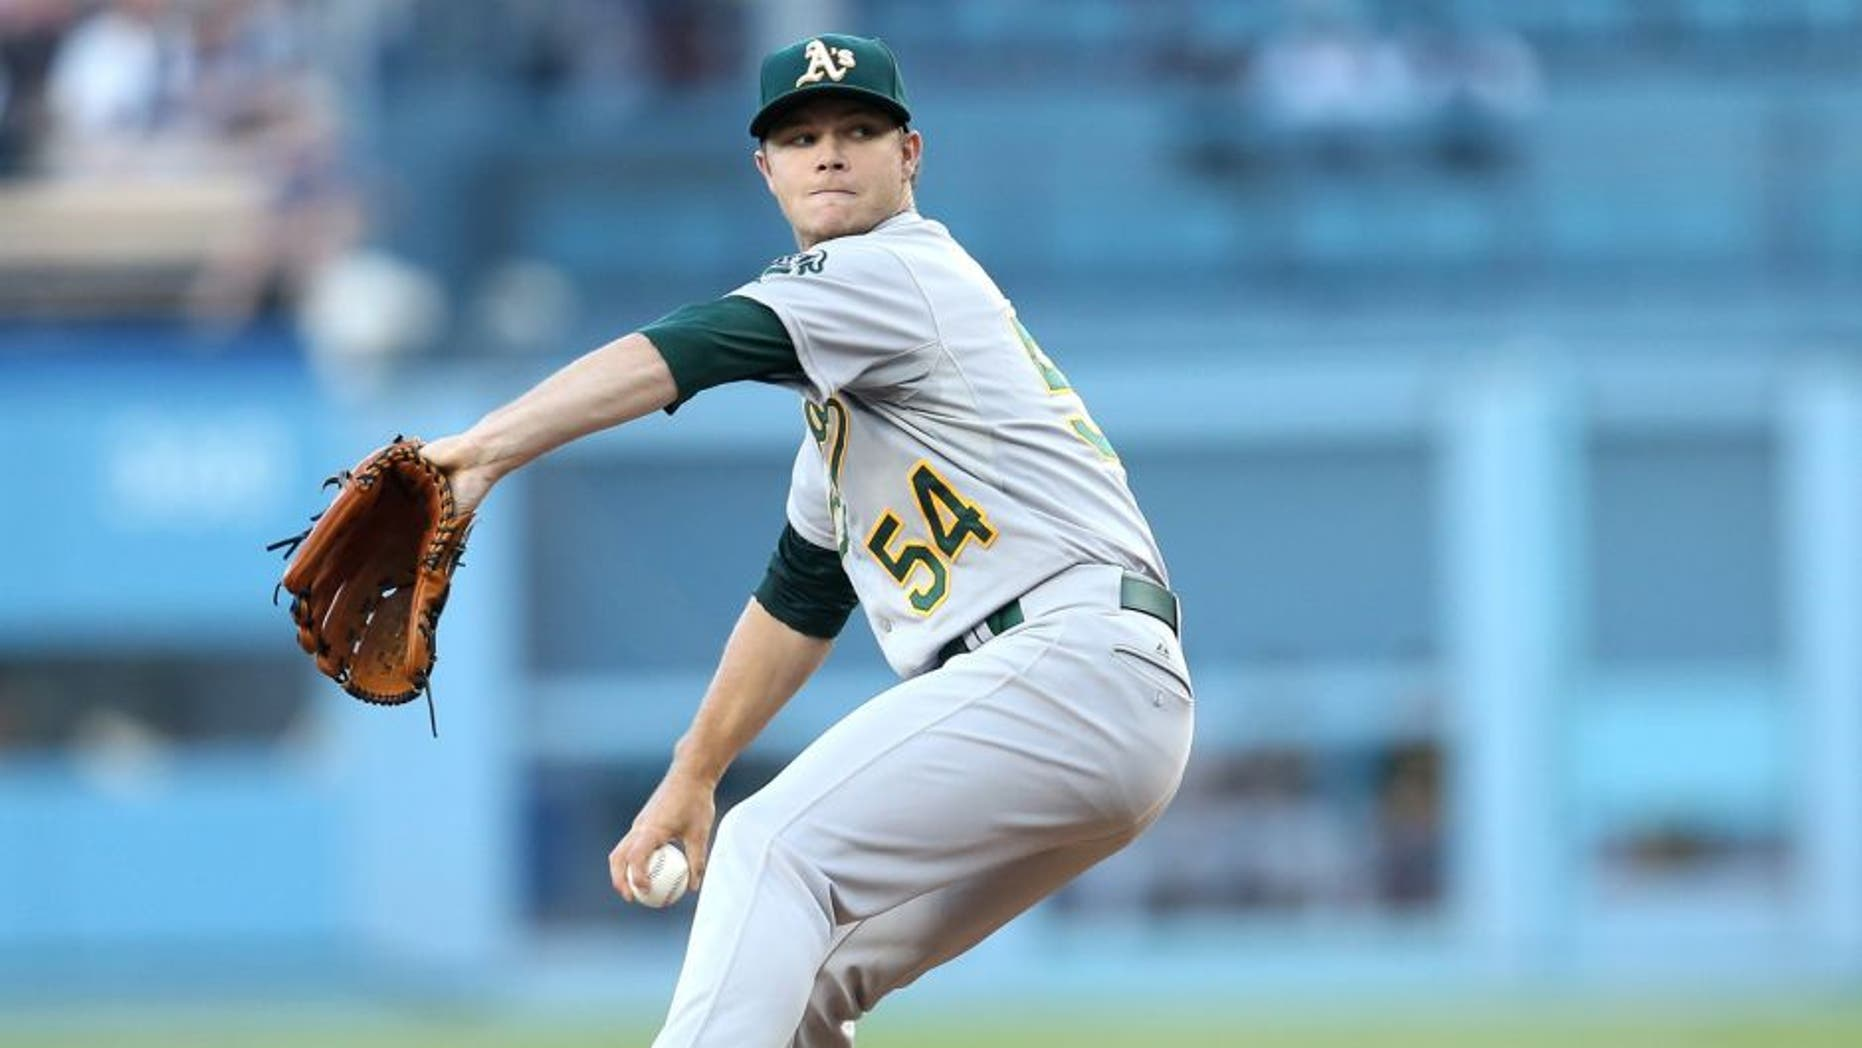 LOS ANGELES, CA - JULY 28: Sonny Gray #54 of the Oakland Athletics throws a pitch against the Los Angeles Dodgers at Dodger Stadium on July 28, 2015 in Los Angeles, California. (Photo by Stephen Dunn/Getty Images)